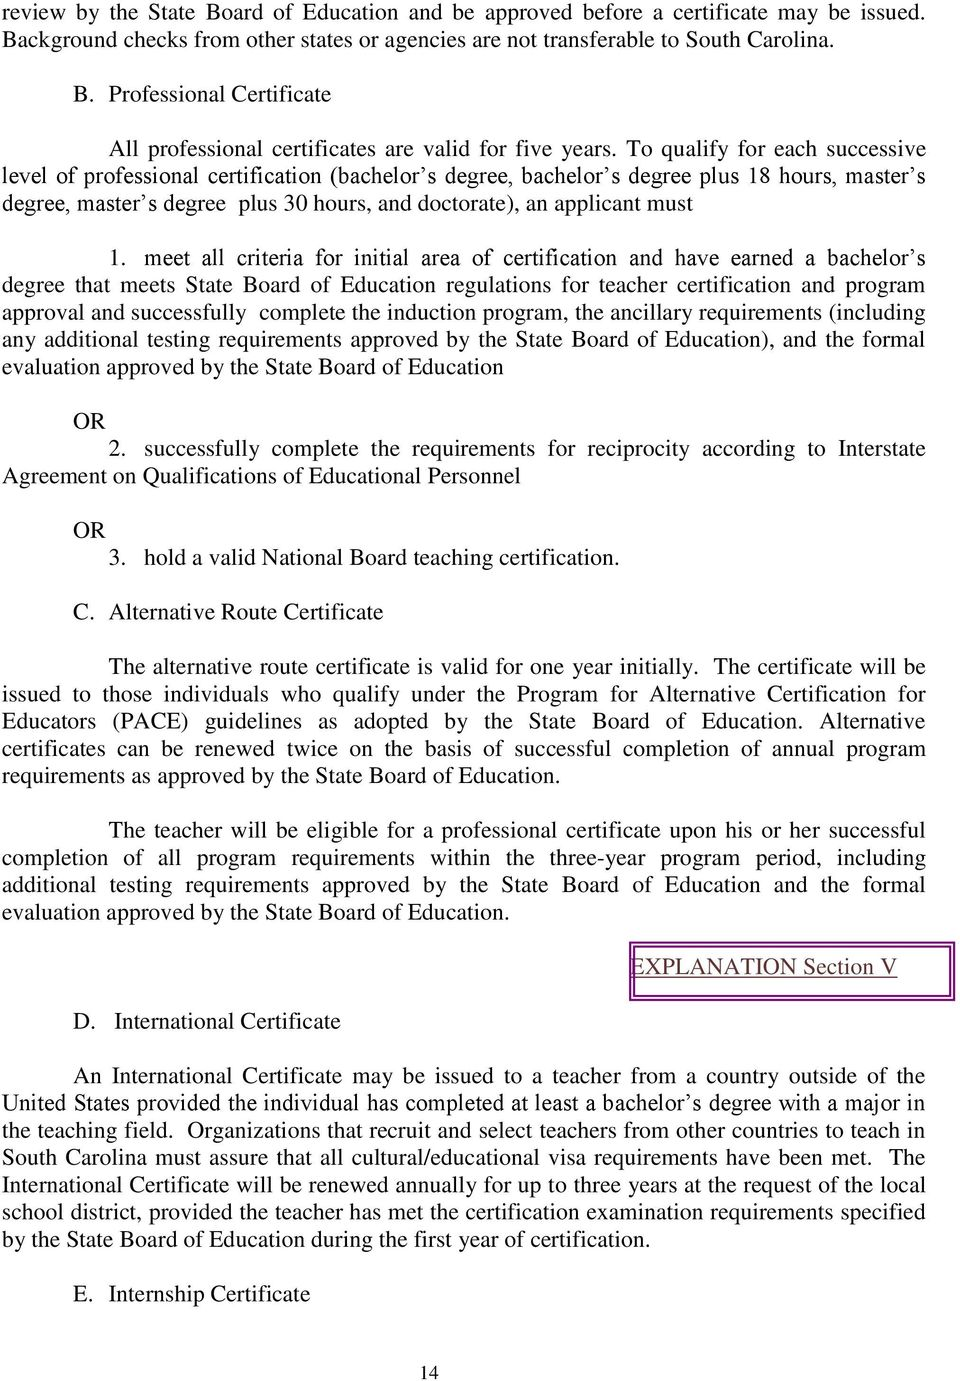 South Carolina Educator Certification Manual Pdf